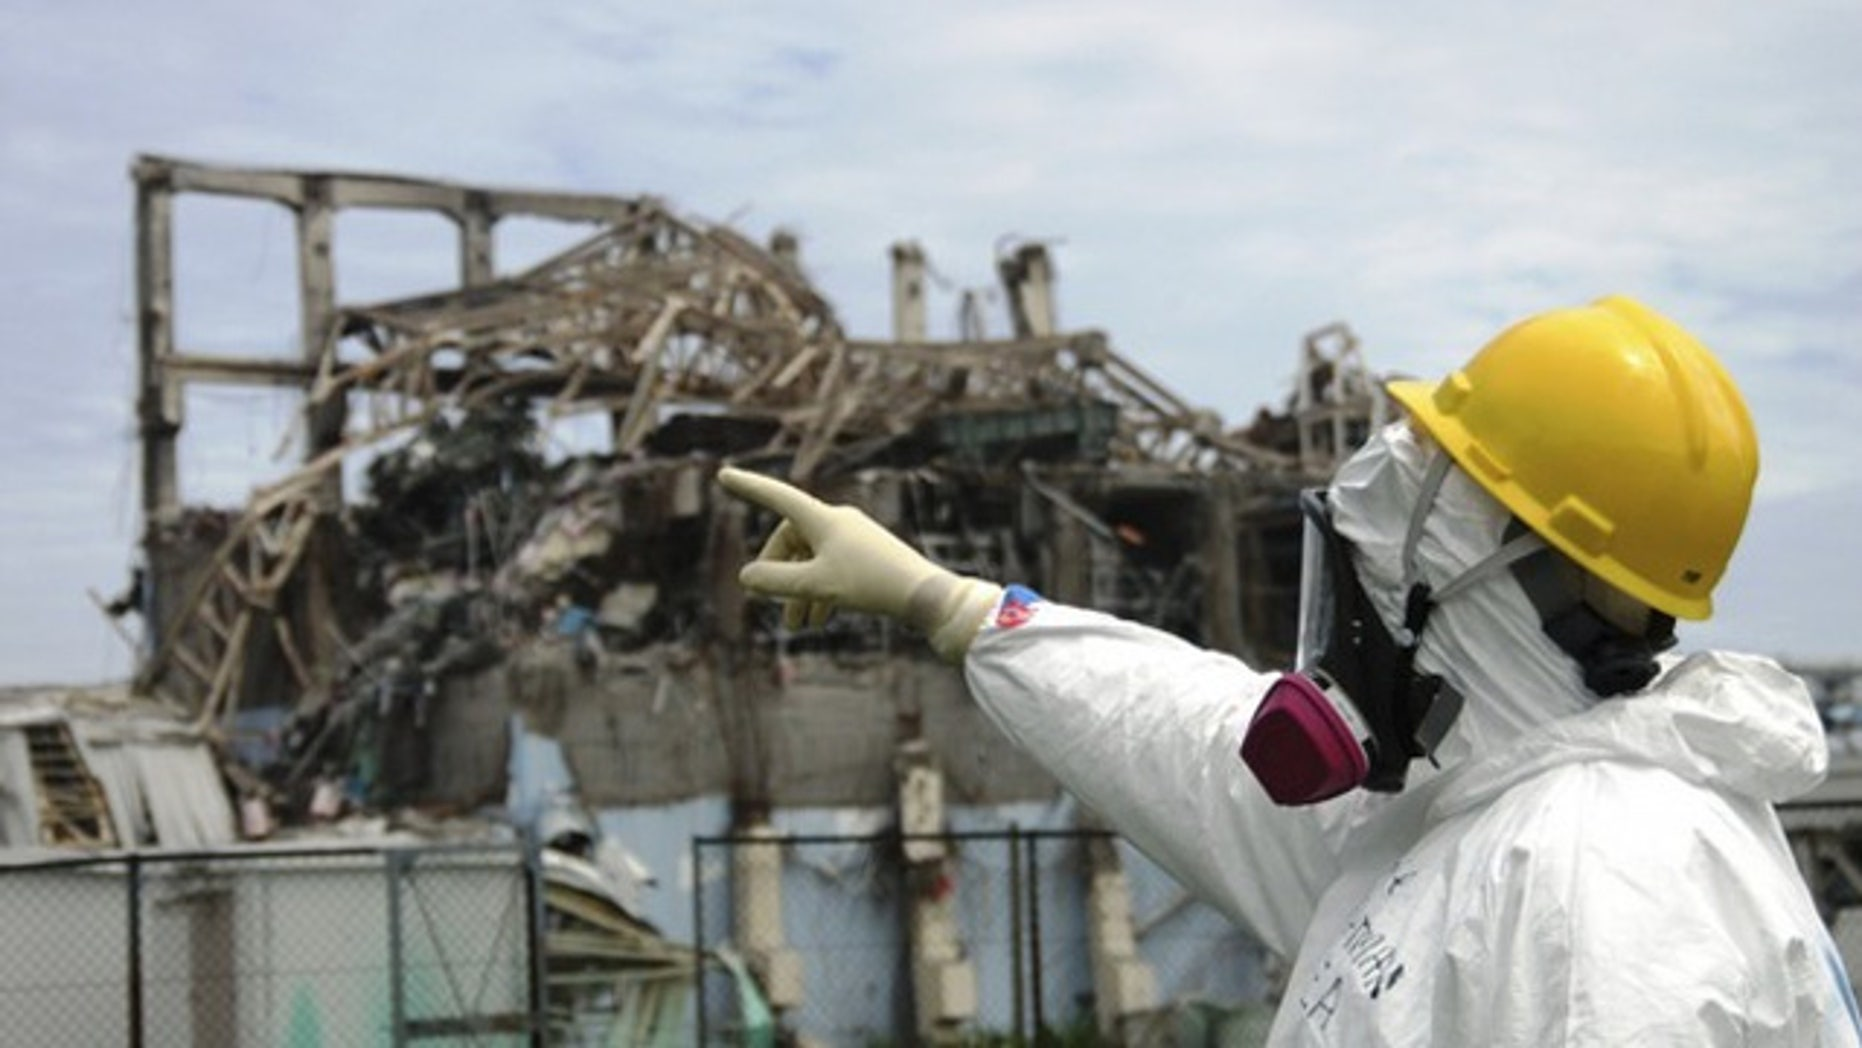 International Atomic Energy Agency (IAEA) fact-finding team leader Mike Weightman examines the No. 3 reactor at the Fukushima Daiichi Nuclear Power Plant. Radioactive sulfur from the disaster reached California, according to researchers.